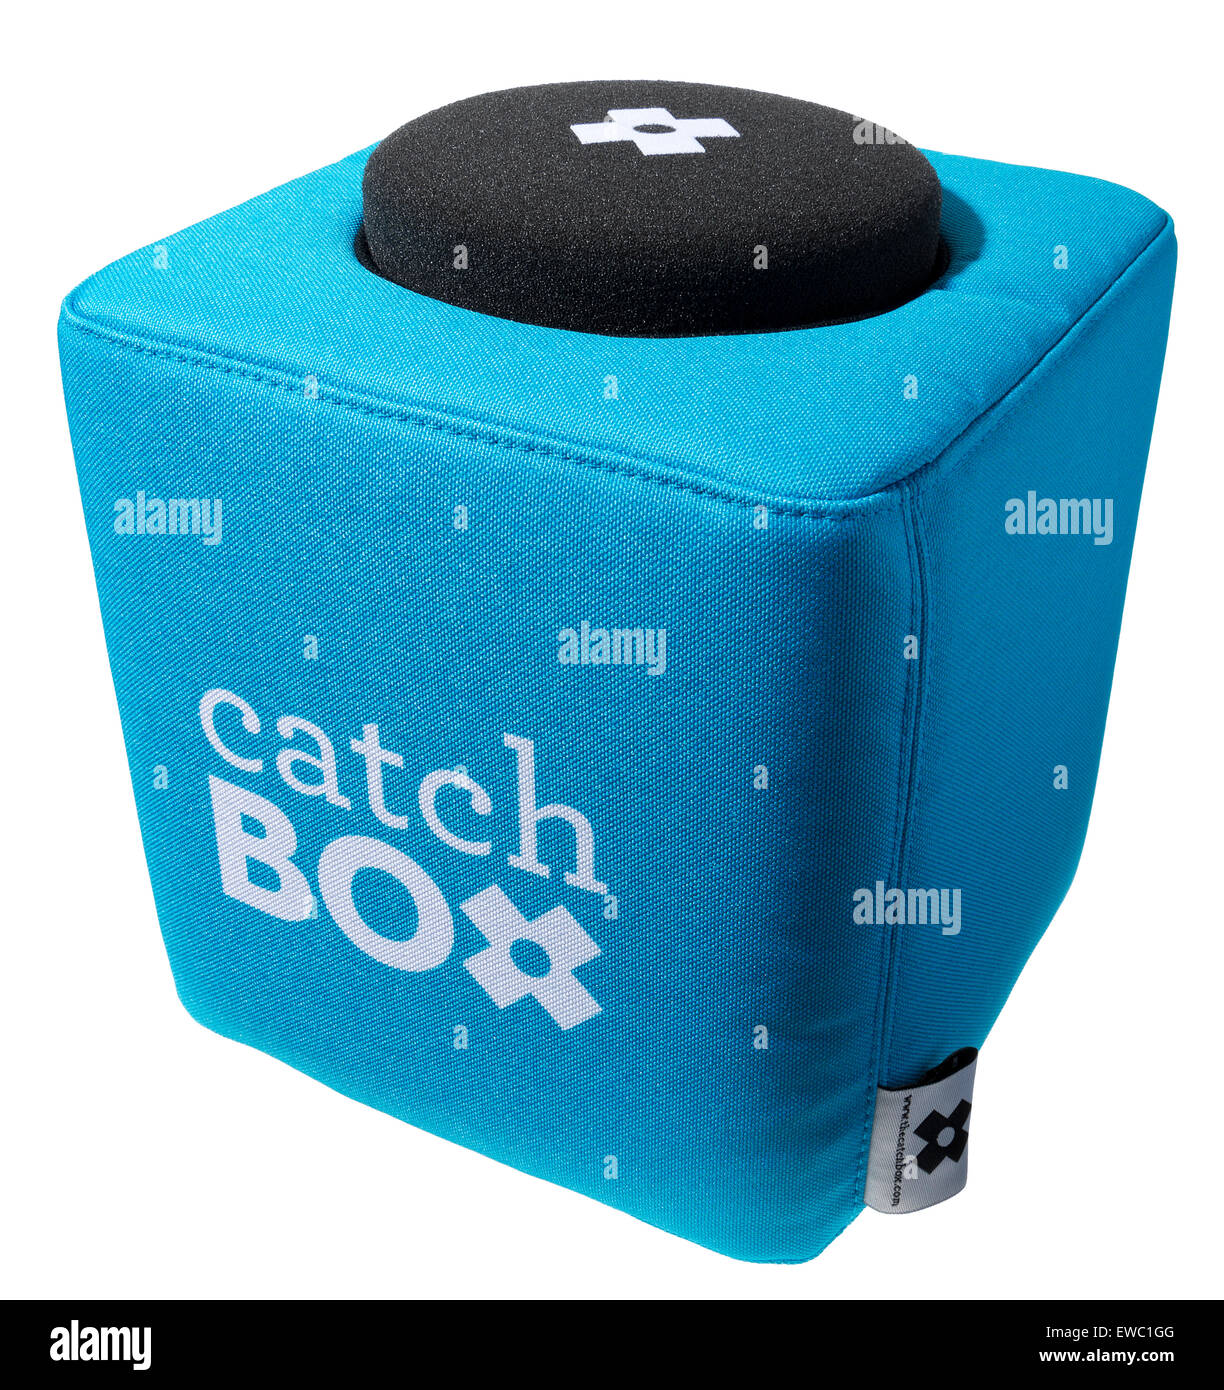 Catch box, throwable microphone. For events where you can engage your audience. Audience participation at presentations. - Stock Image